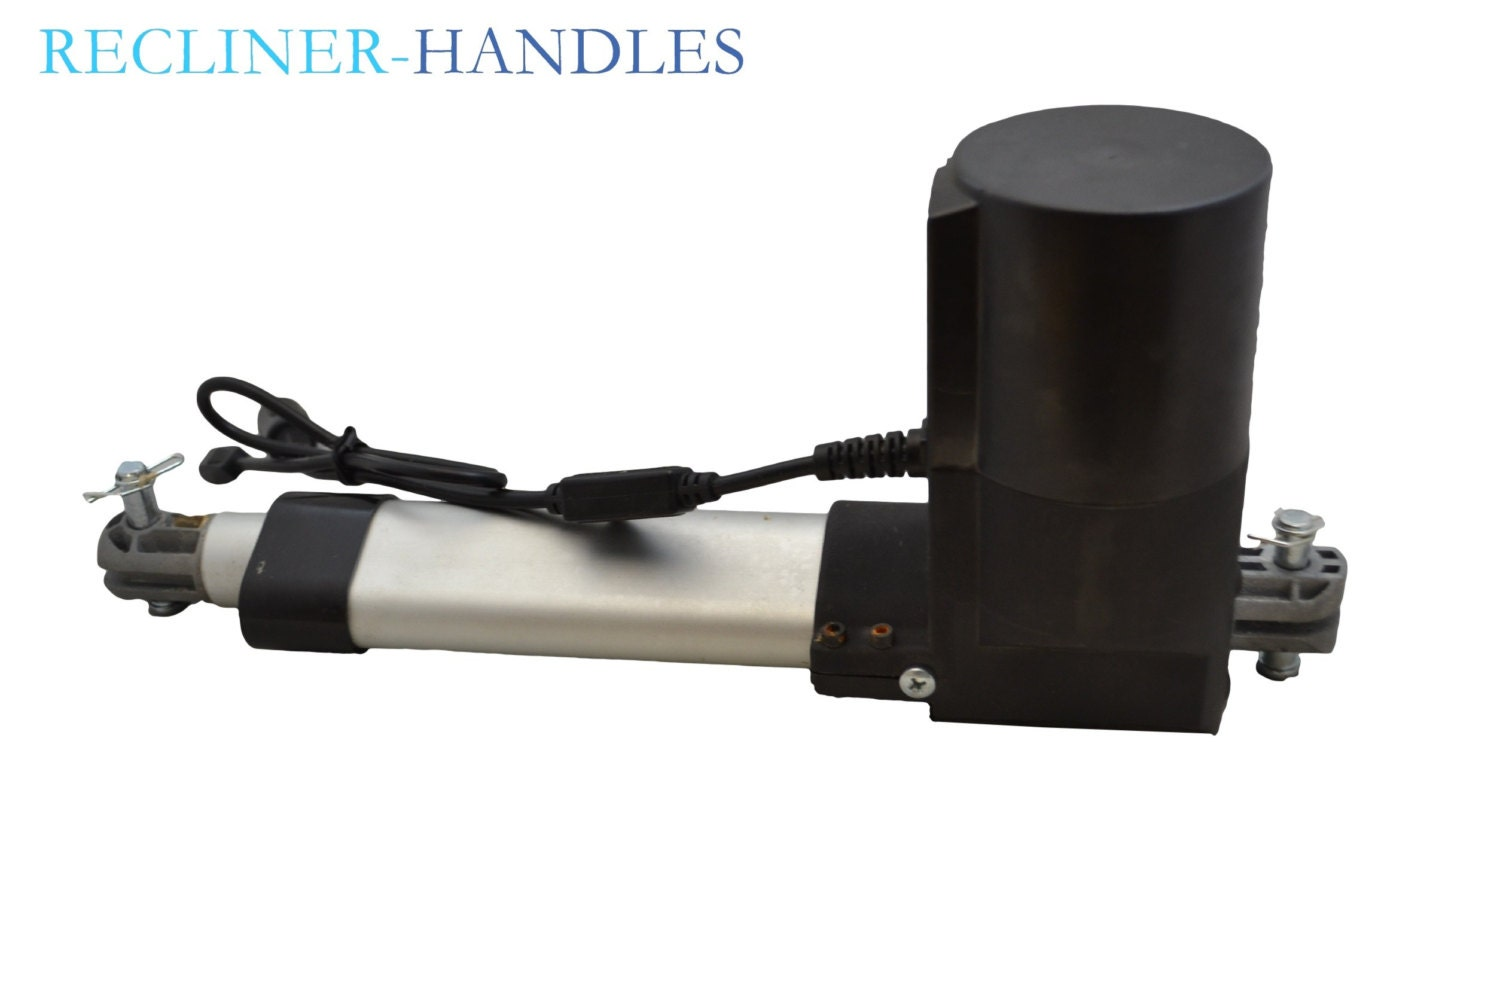 Okin Refined Jldq 3 337 130c Linear Actuator Motor For Power